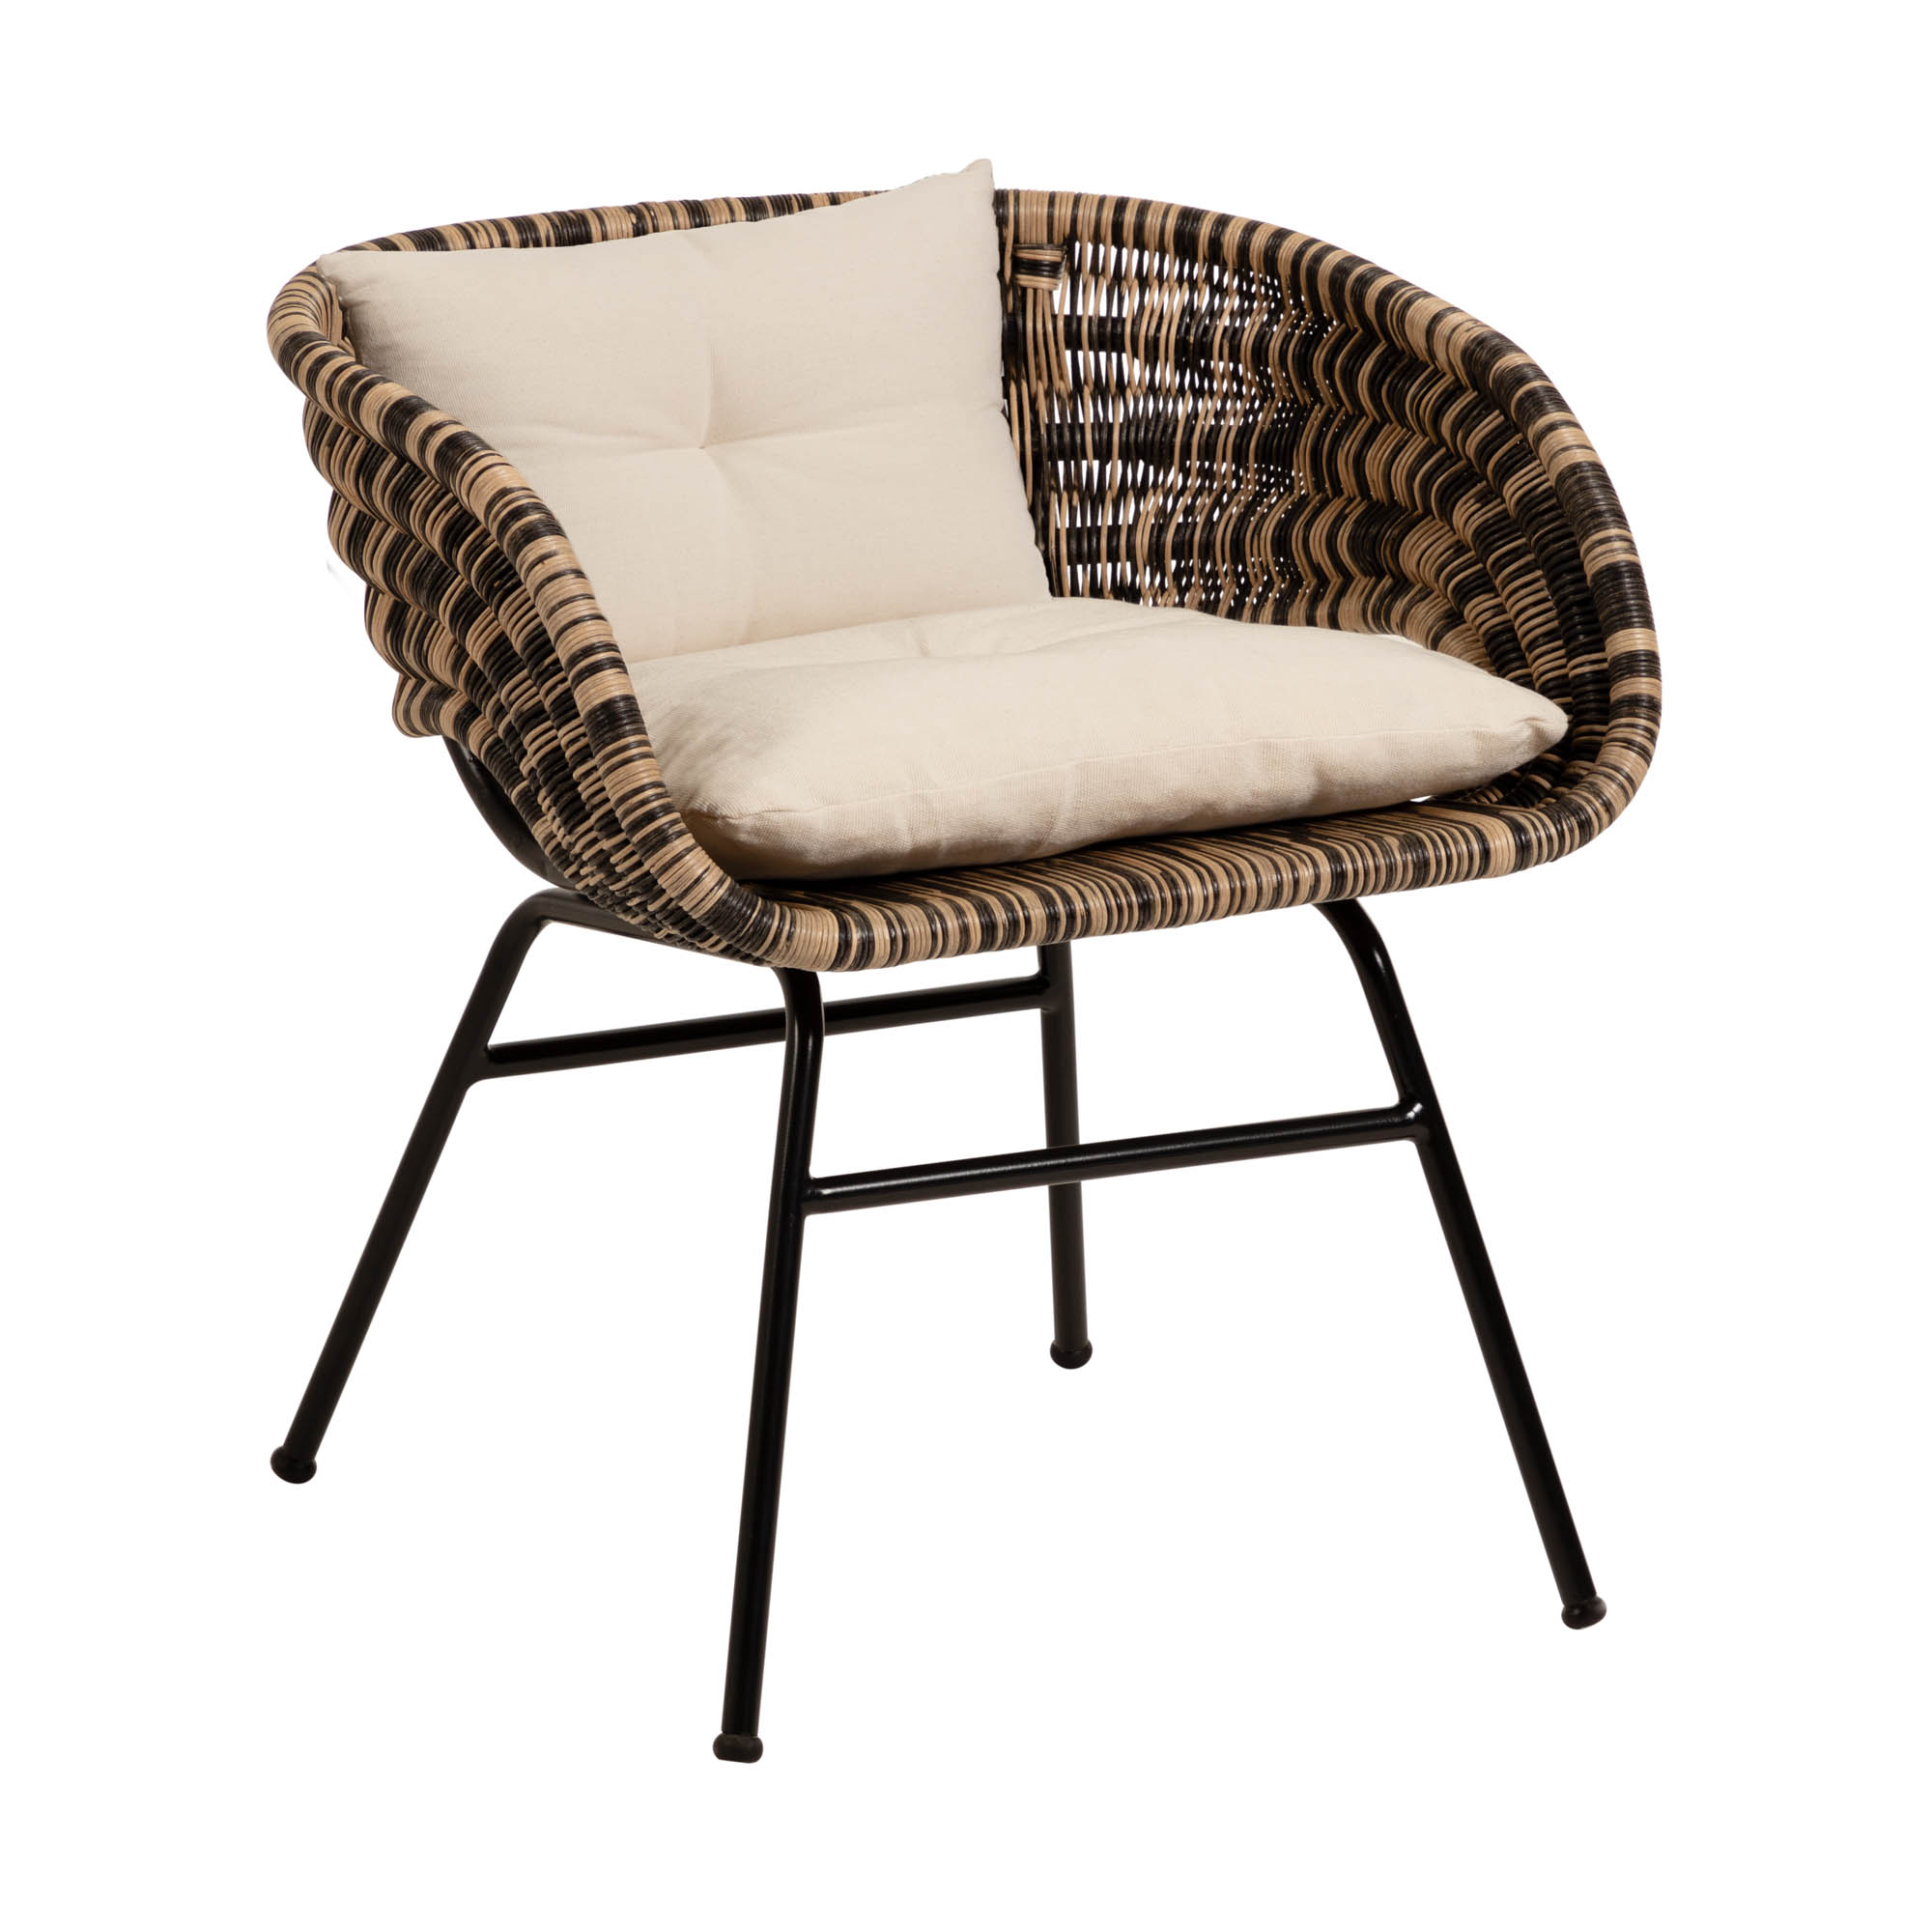 Kave home - chaise lin